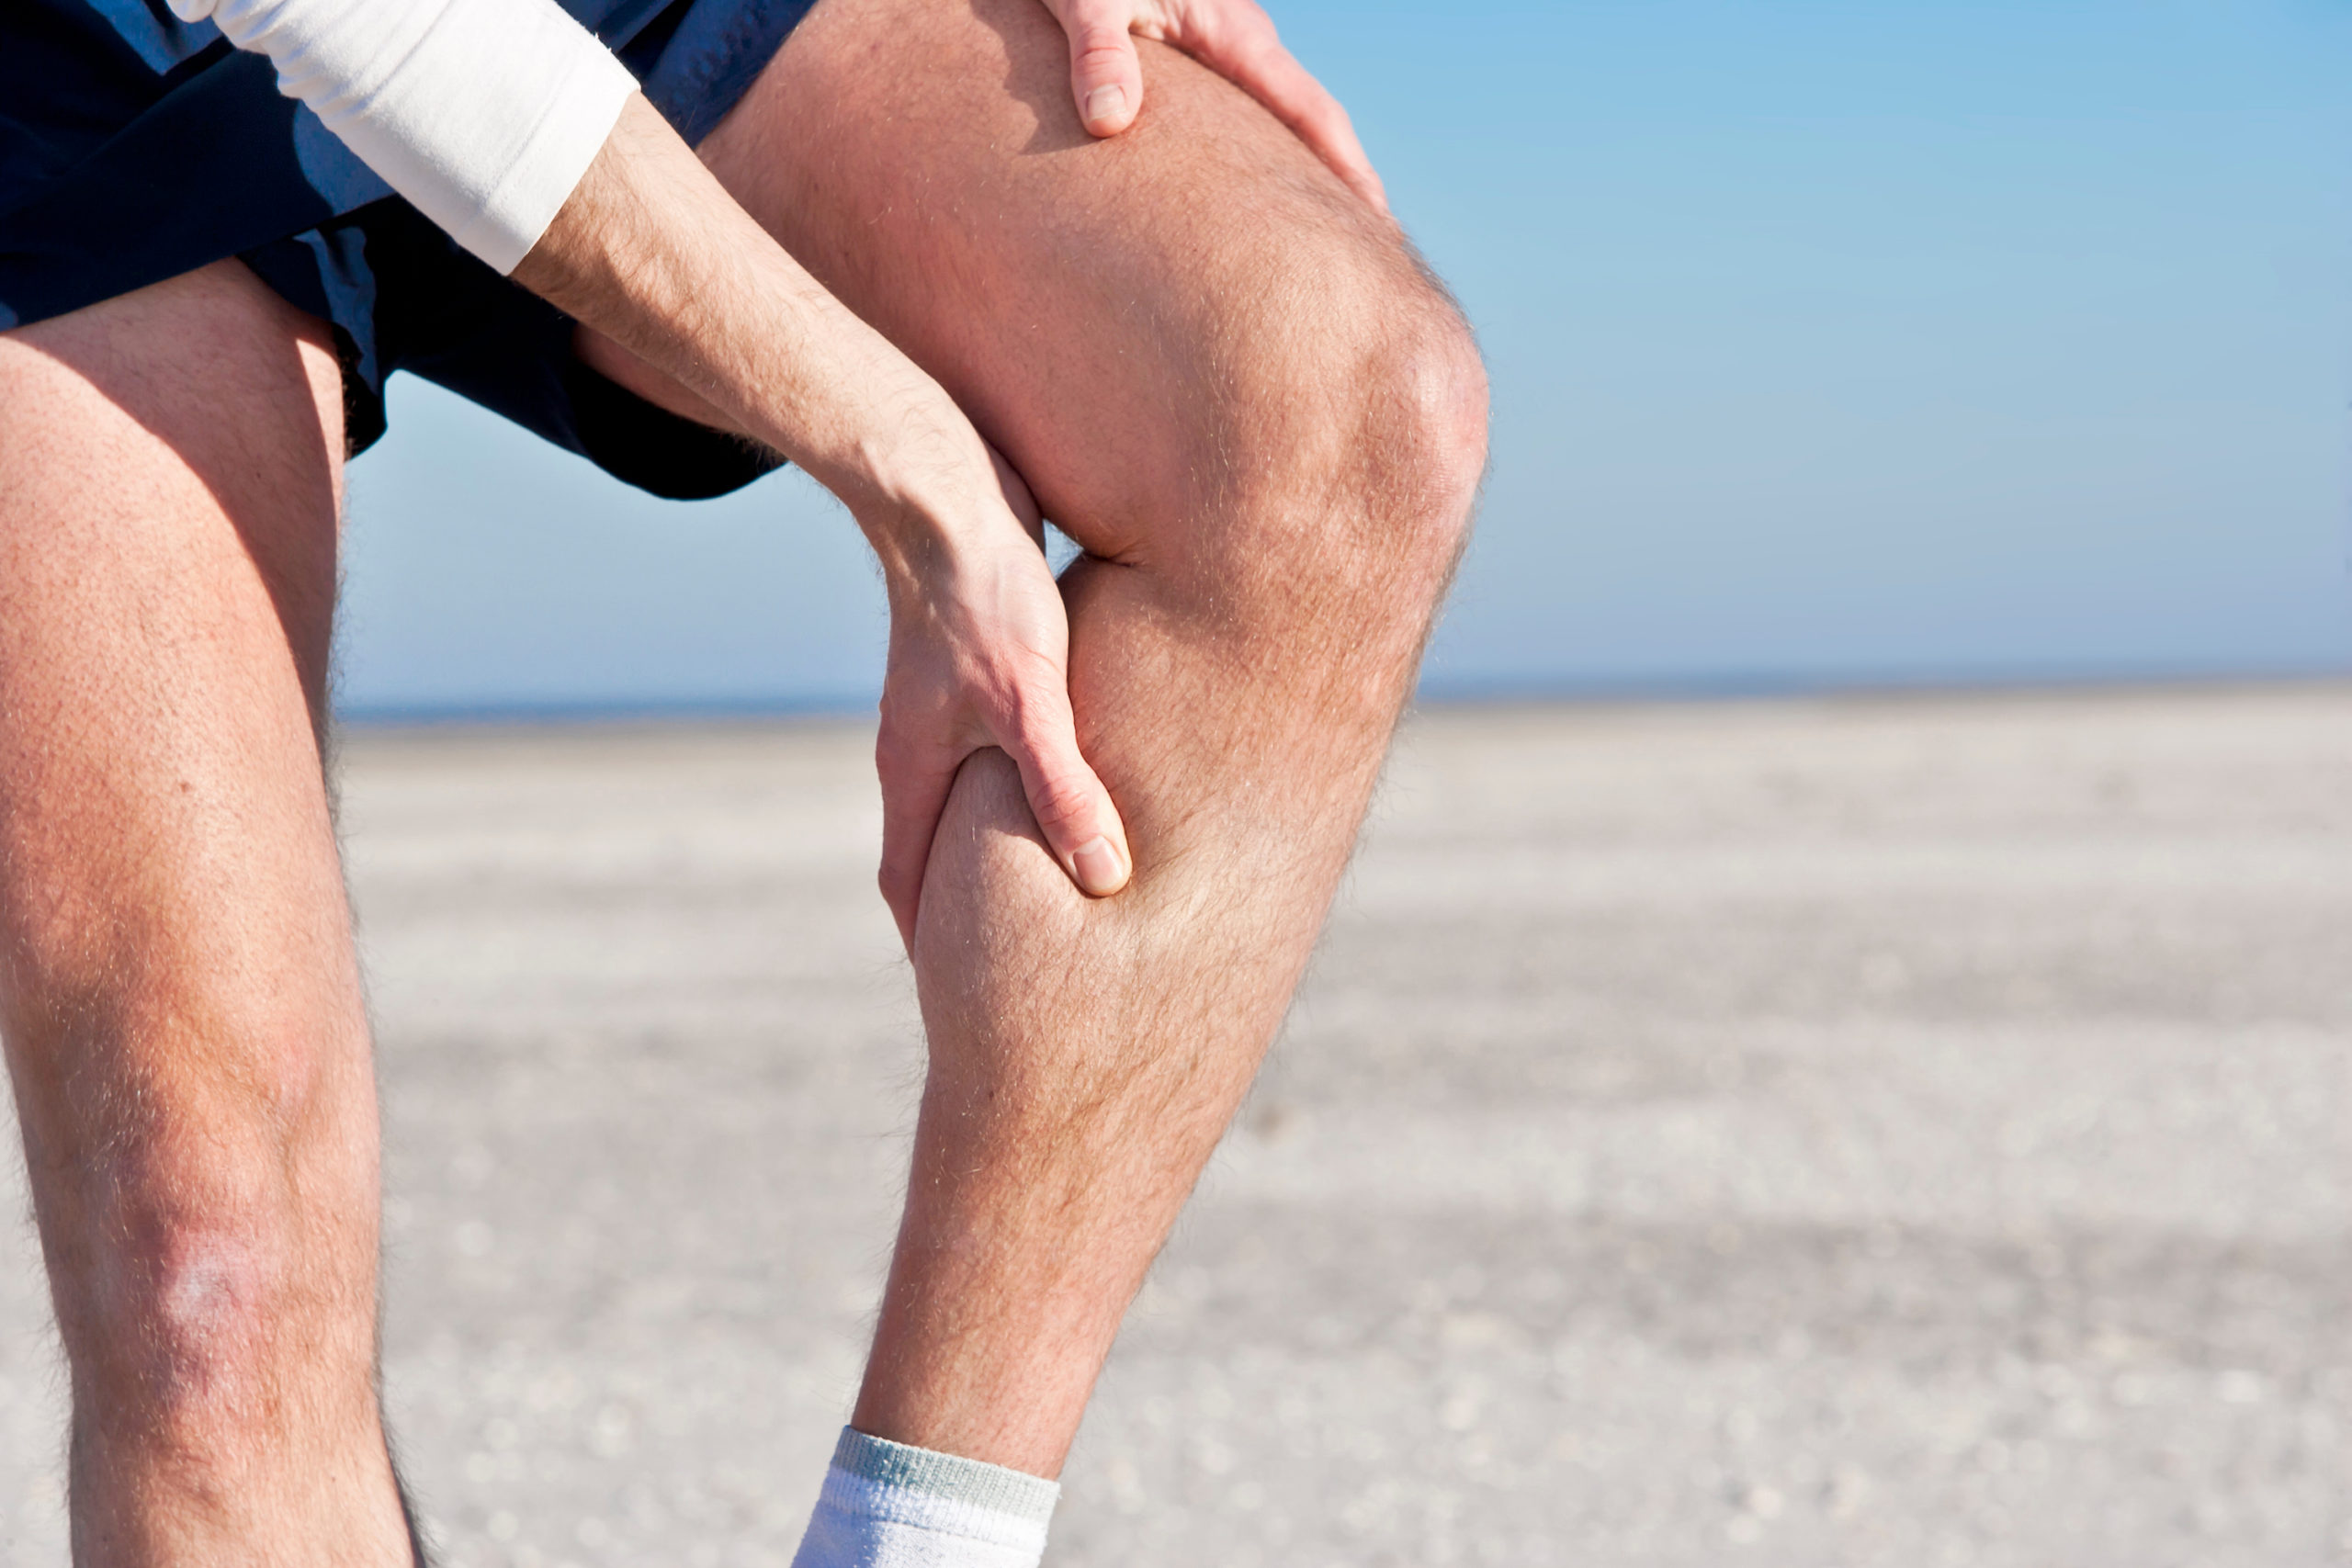 man with painful sore les form squatting